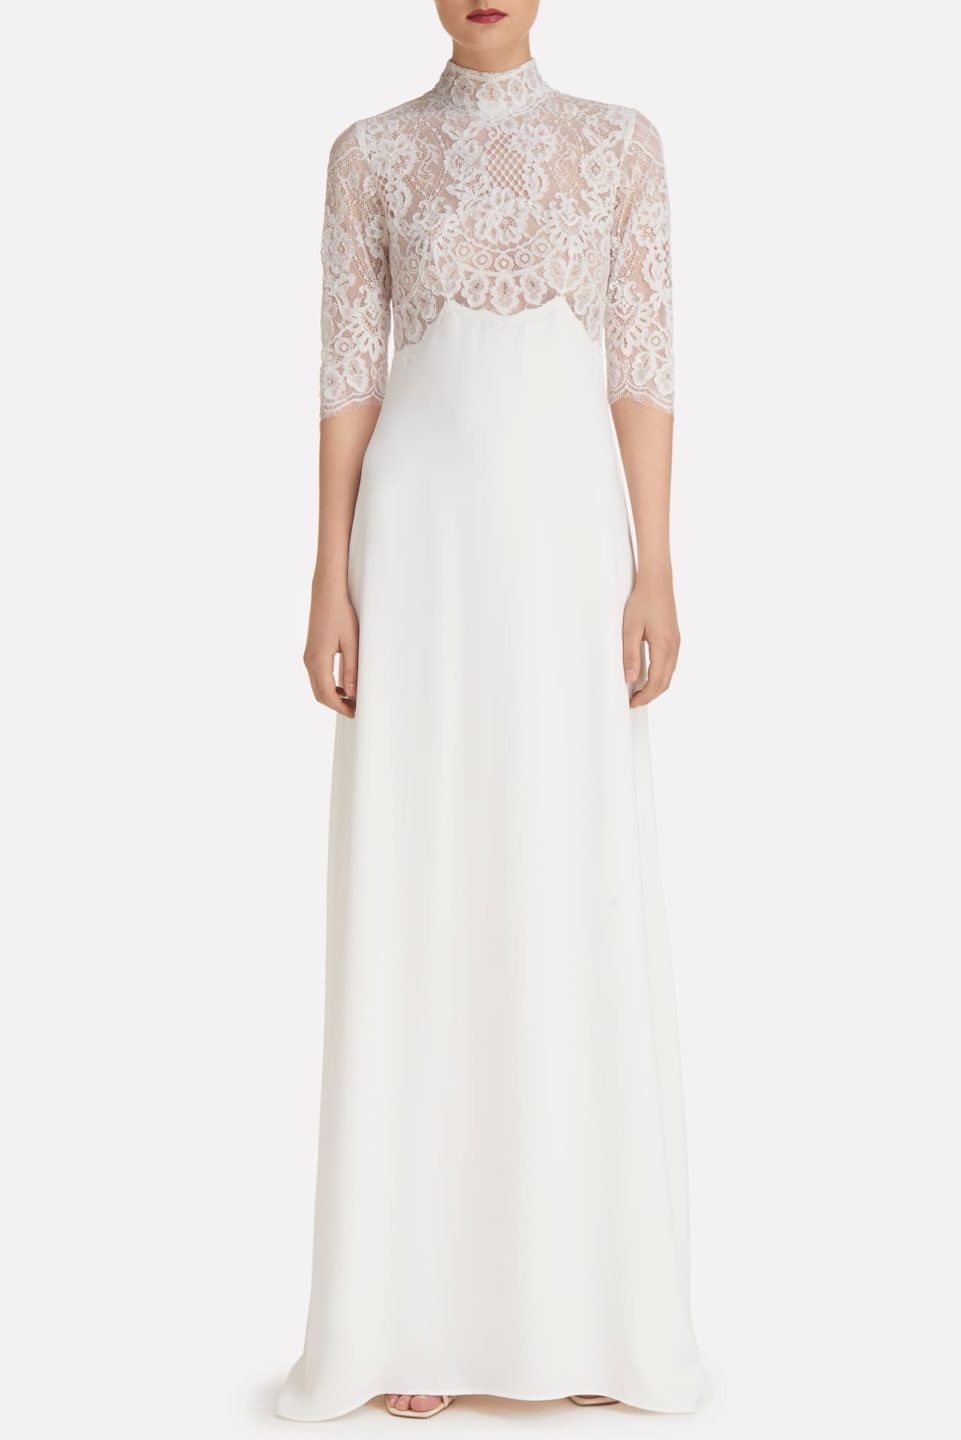 Blanca SS2157 Crepe Empire Gown with Corded Lace Bodice and High-Neckline